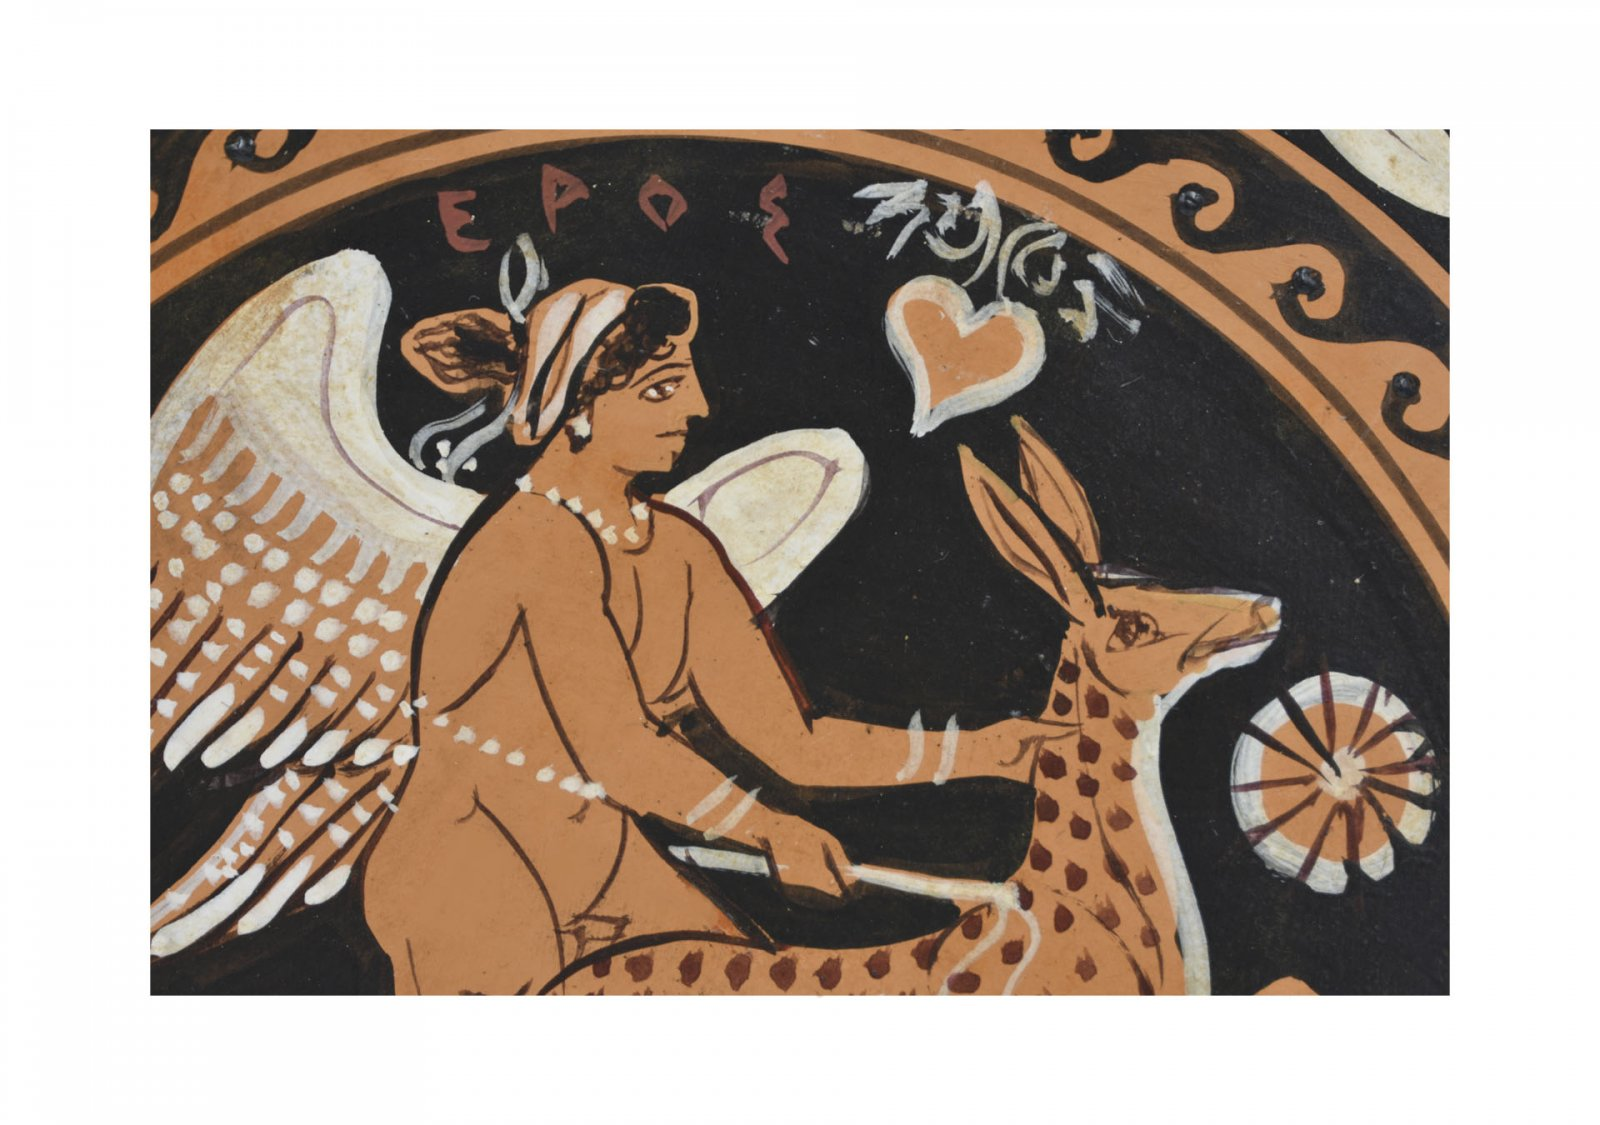 Greek ceramic plate depicting Eros, the Greek god of love, with a fawn